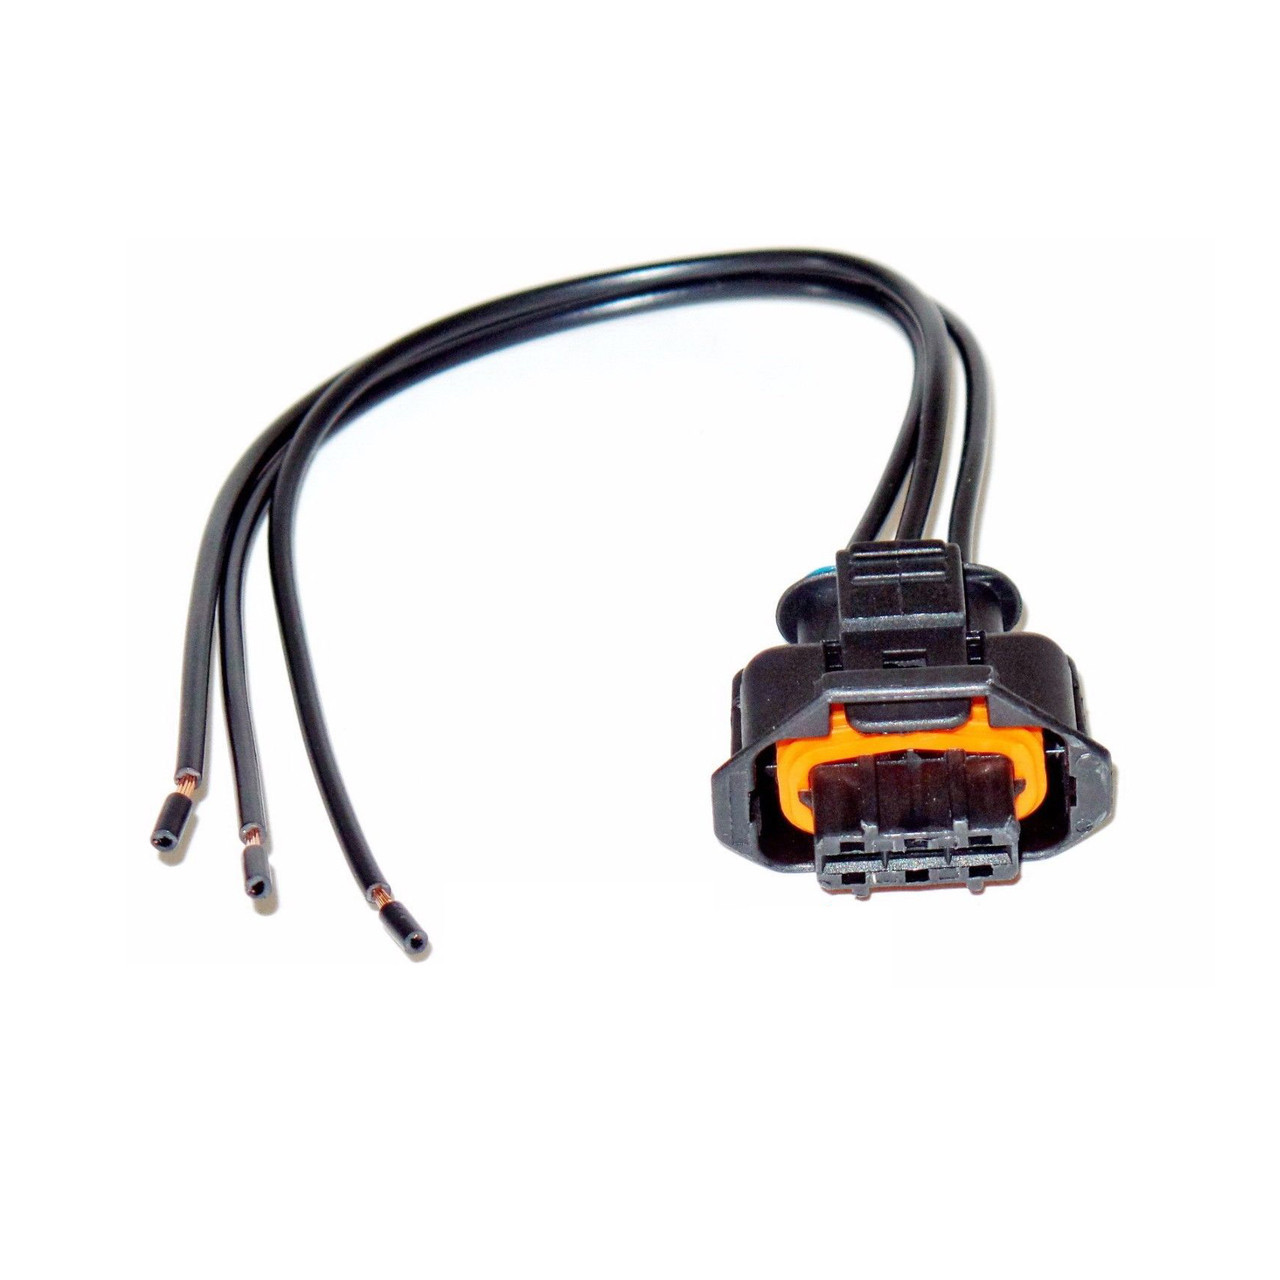 hight resolution of gm ls3 map sensor wiring diagram wiring library map sensor connector harness pigtail for 2008 2013